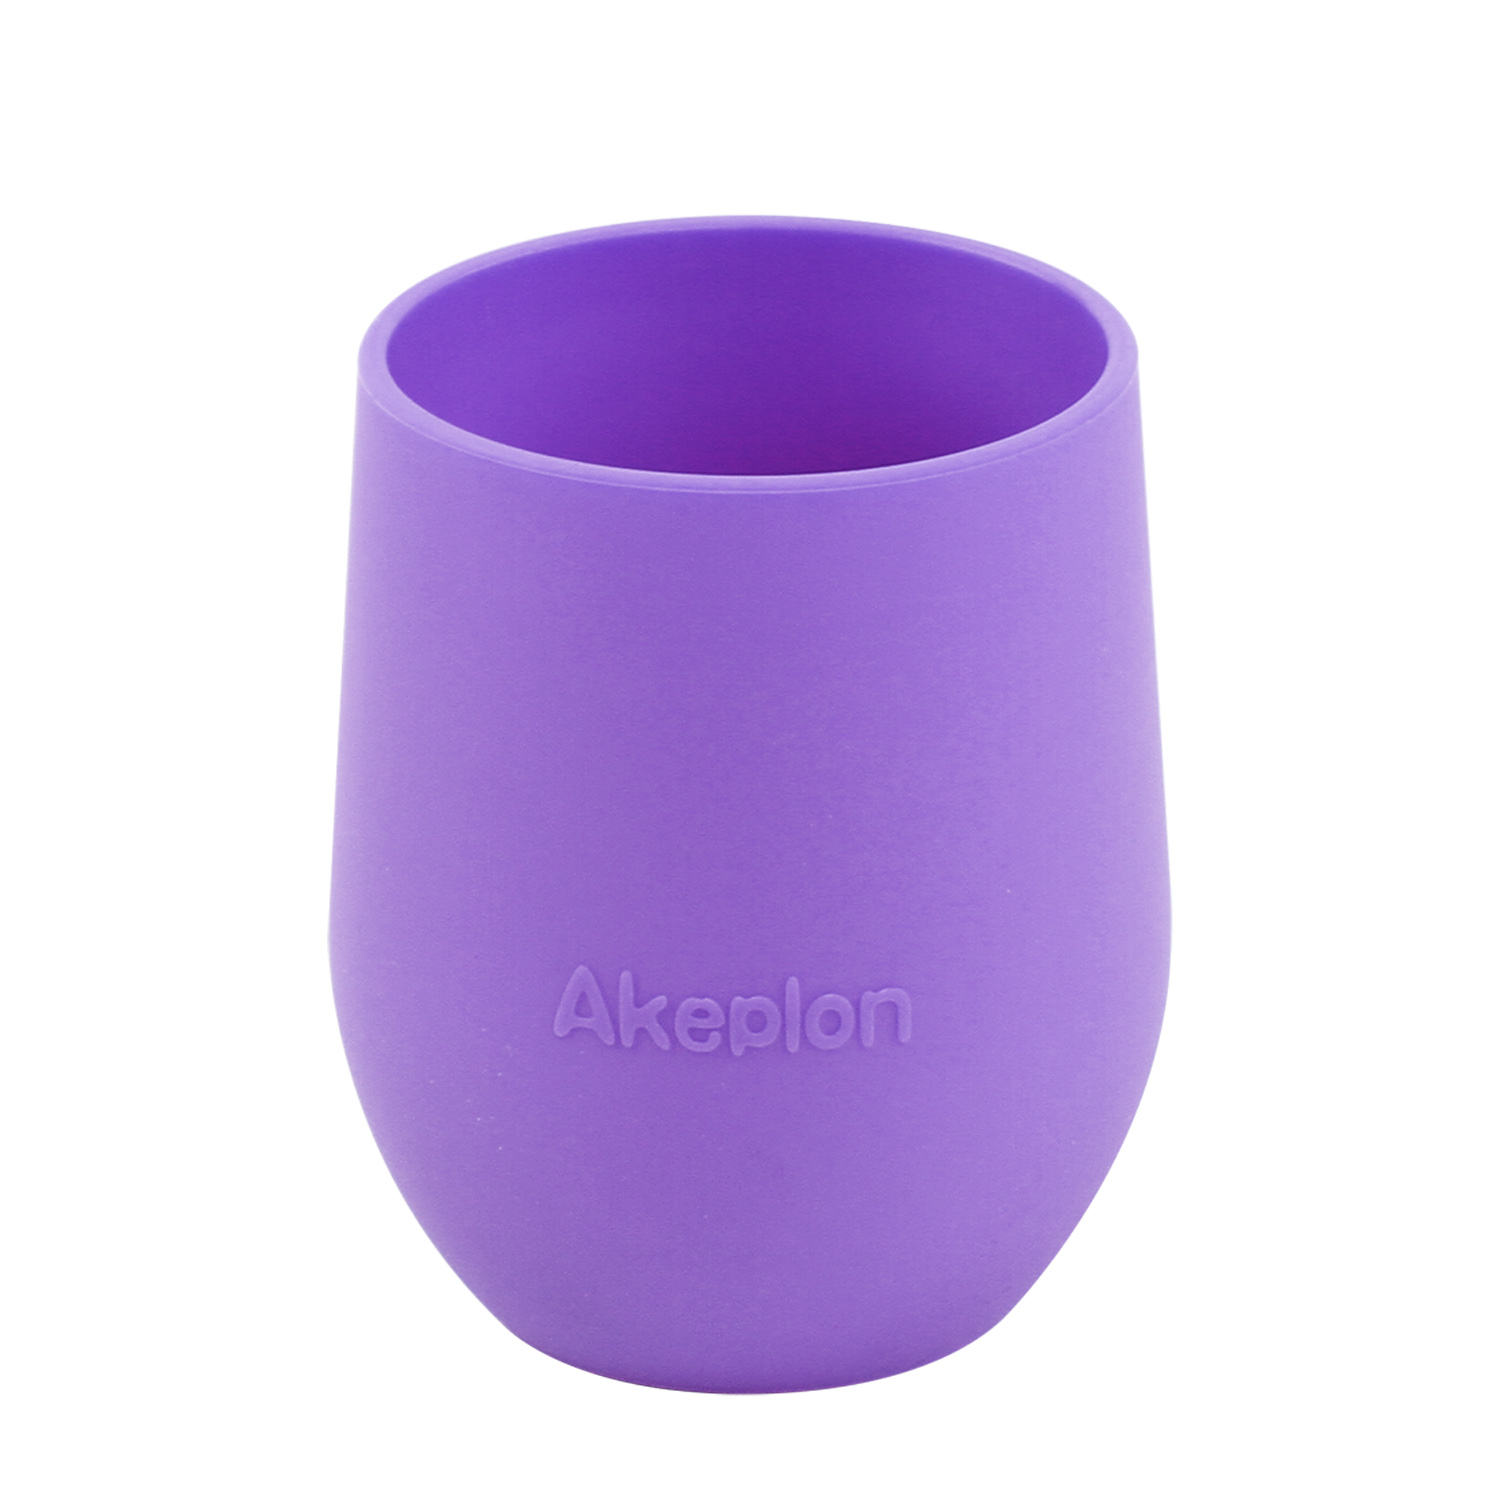 Mini Cup (Lime) - 100% Silicone Cup for Toddlers - Designed by a Pediatric Feeding Specialist - 12 Months+